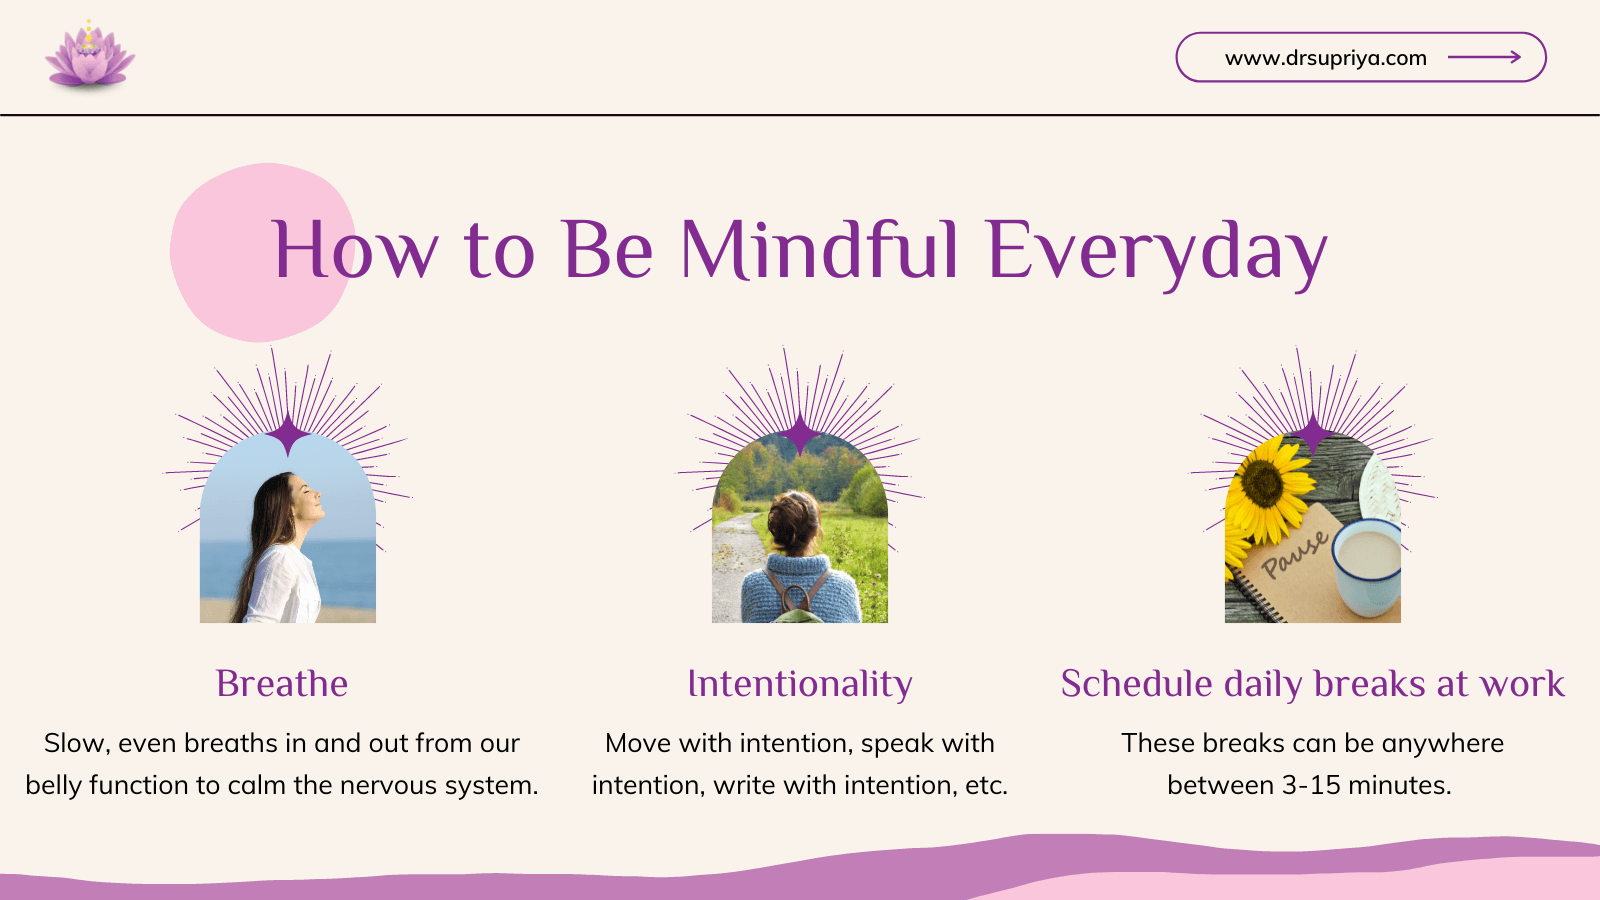 How to Be Mindful Everyday